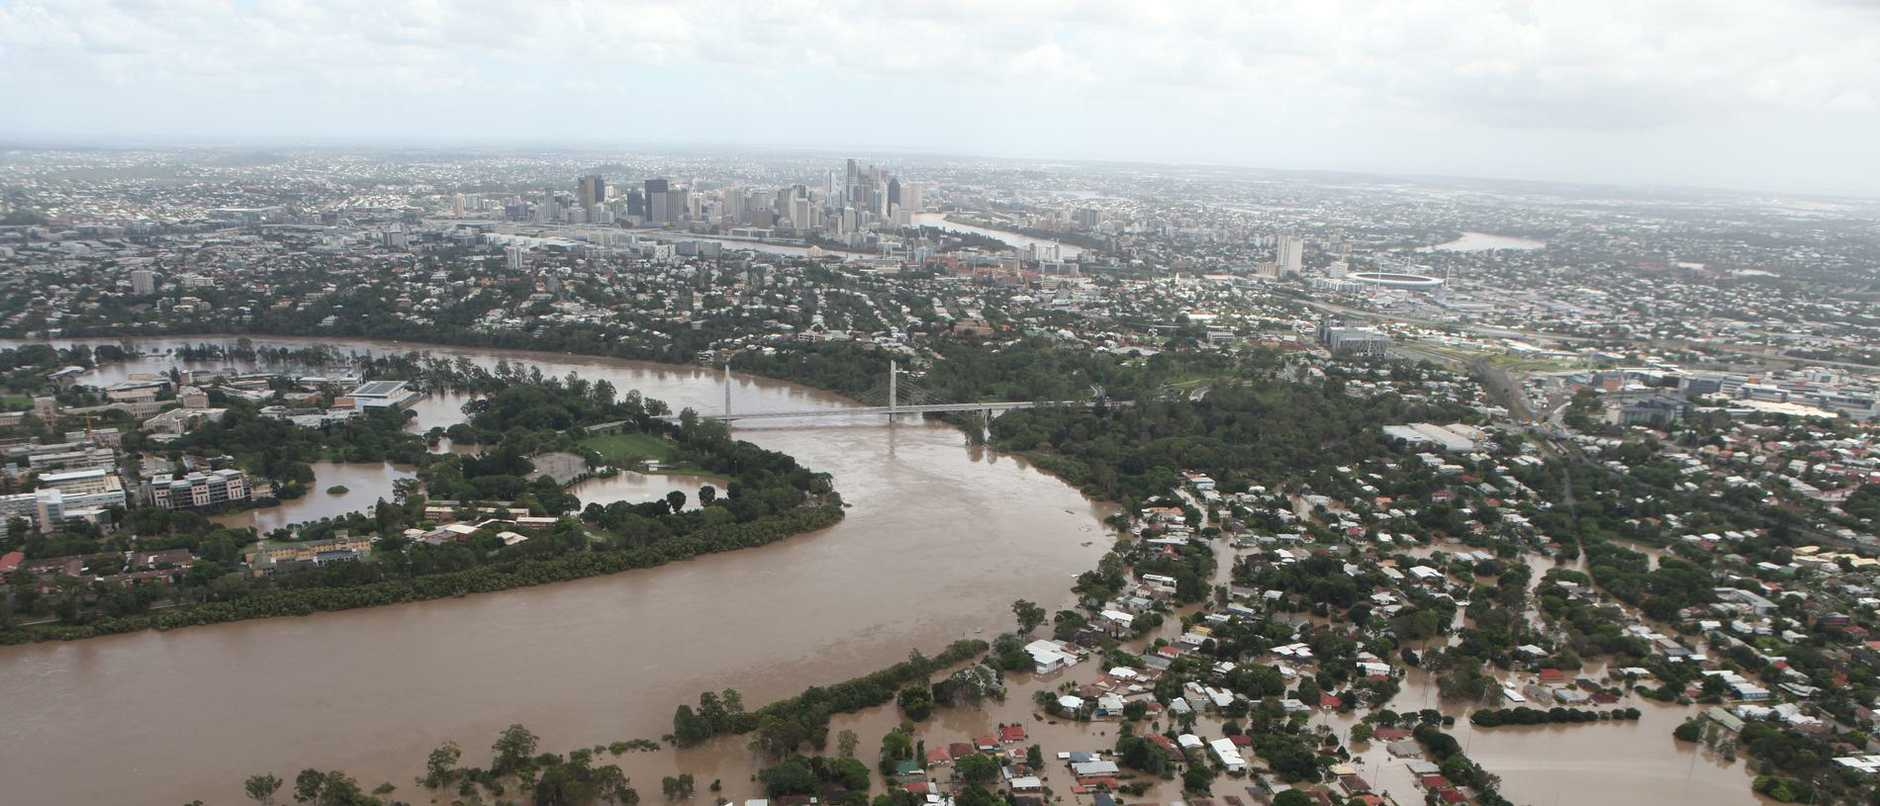 Q Weekend 13.01.11 Aerials of Brisbane Floods from Channel 9 Helicopter.